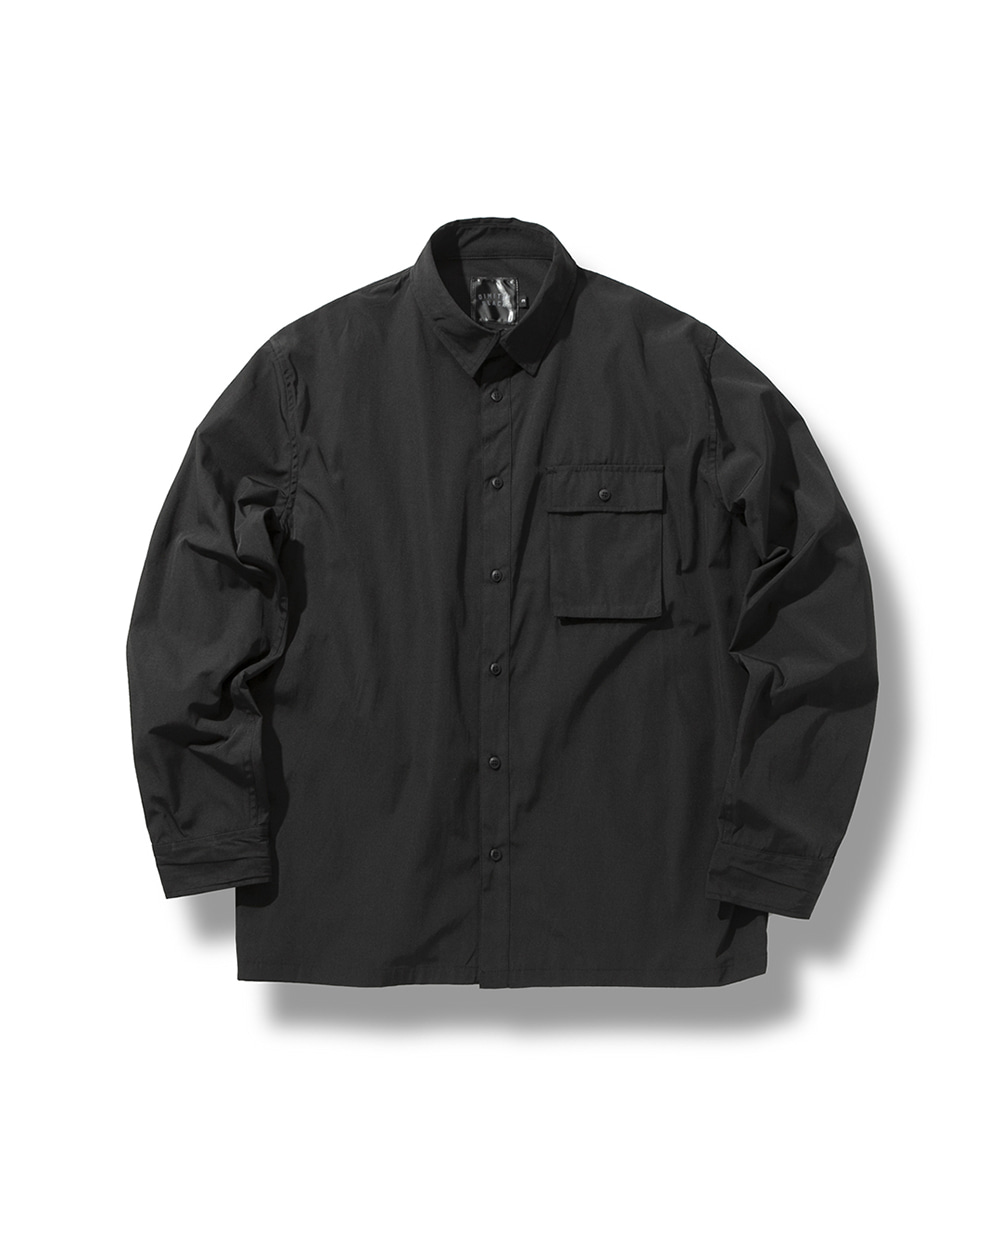 C/P SHIRTS JACKET BLACK